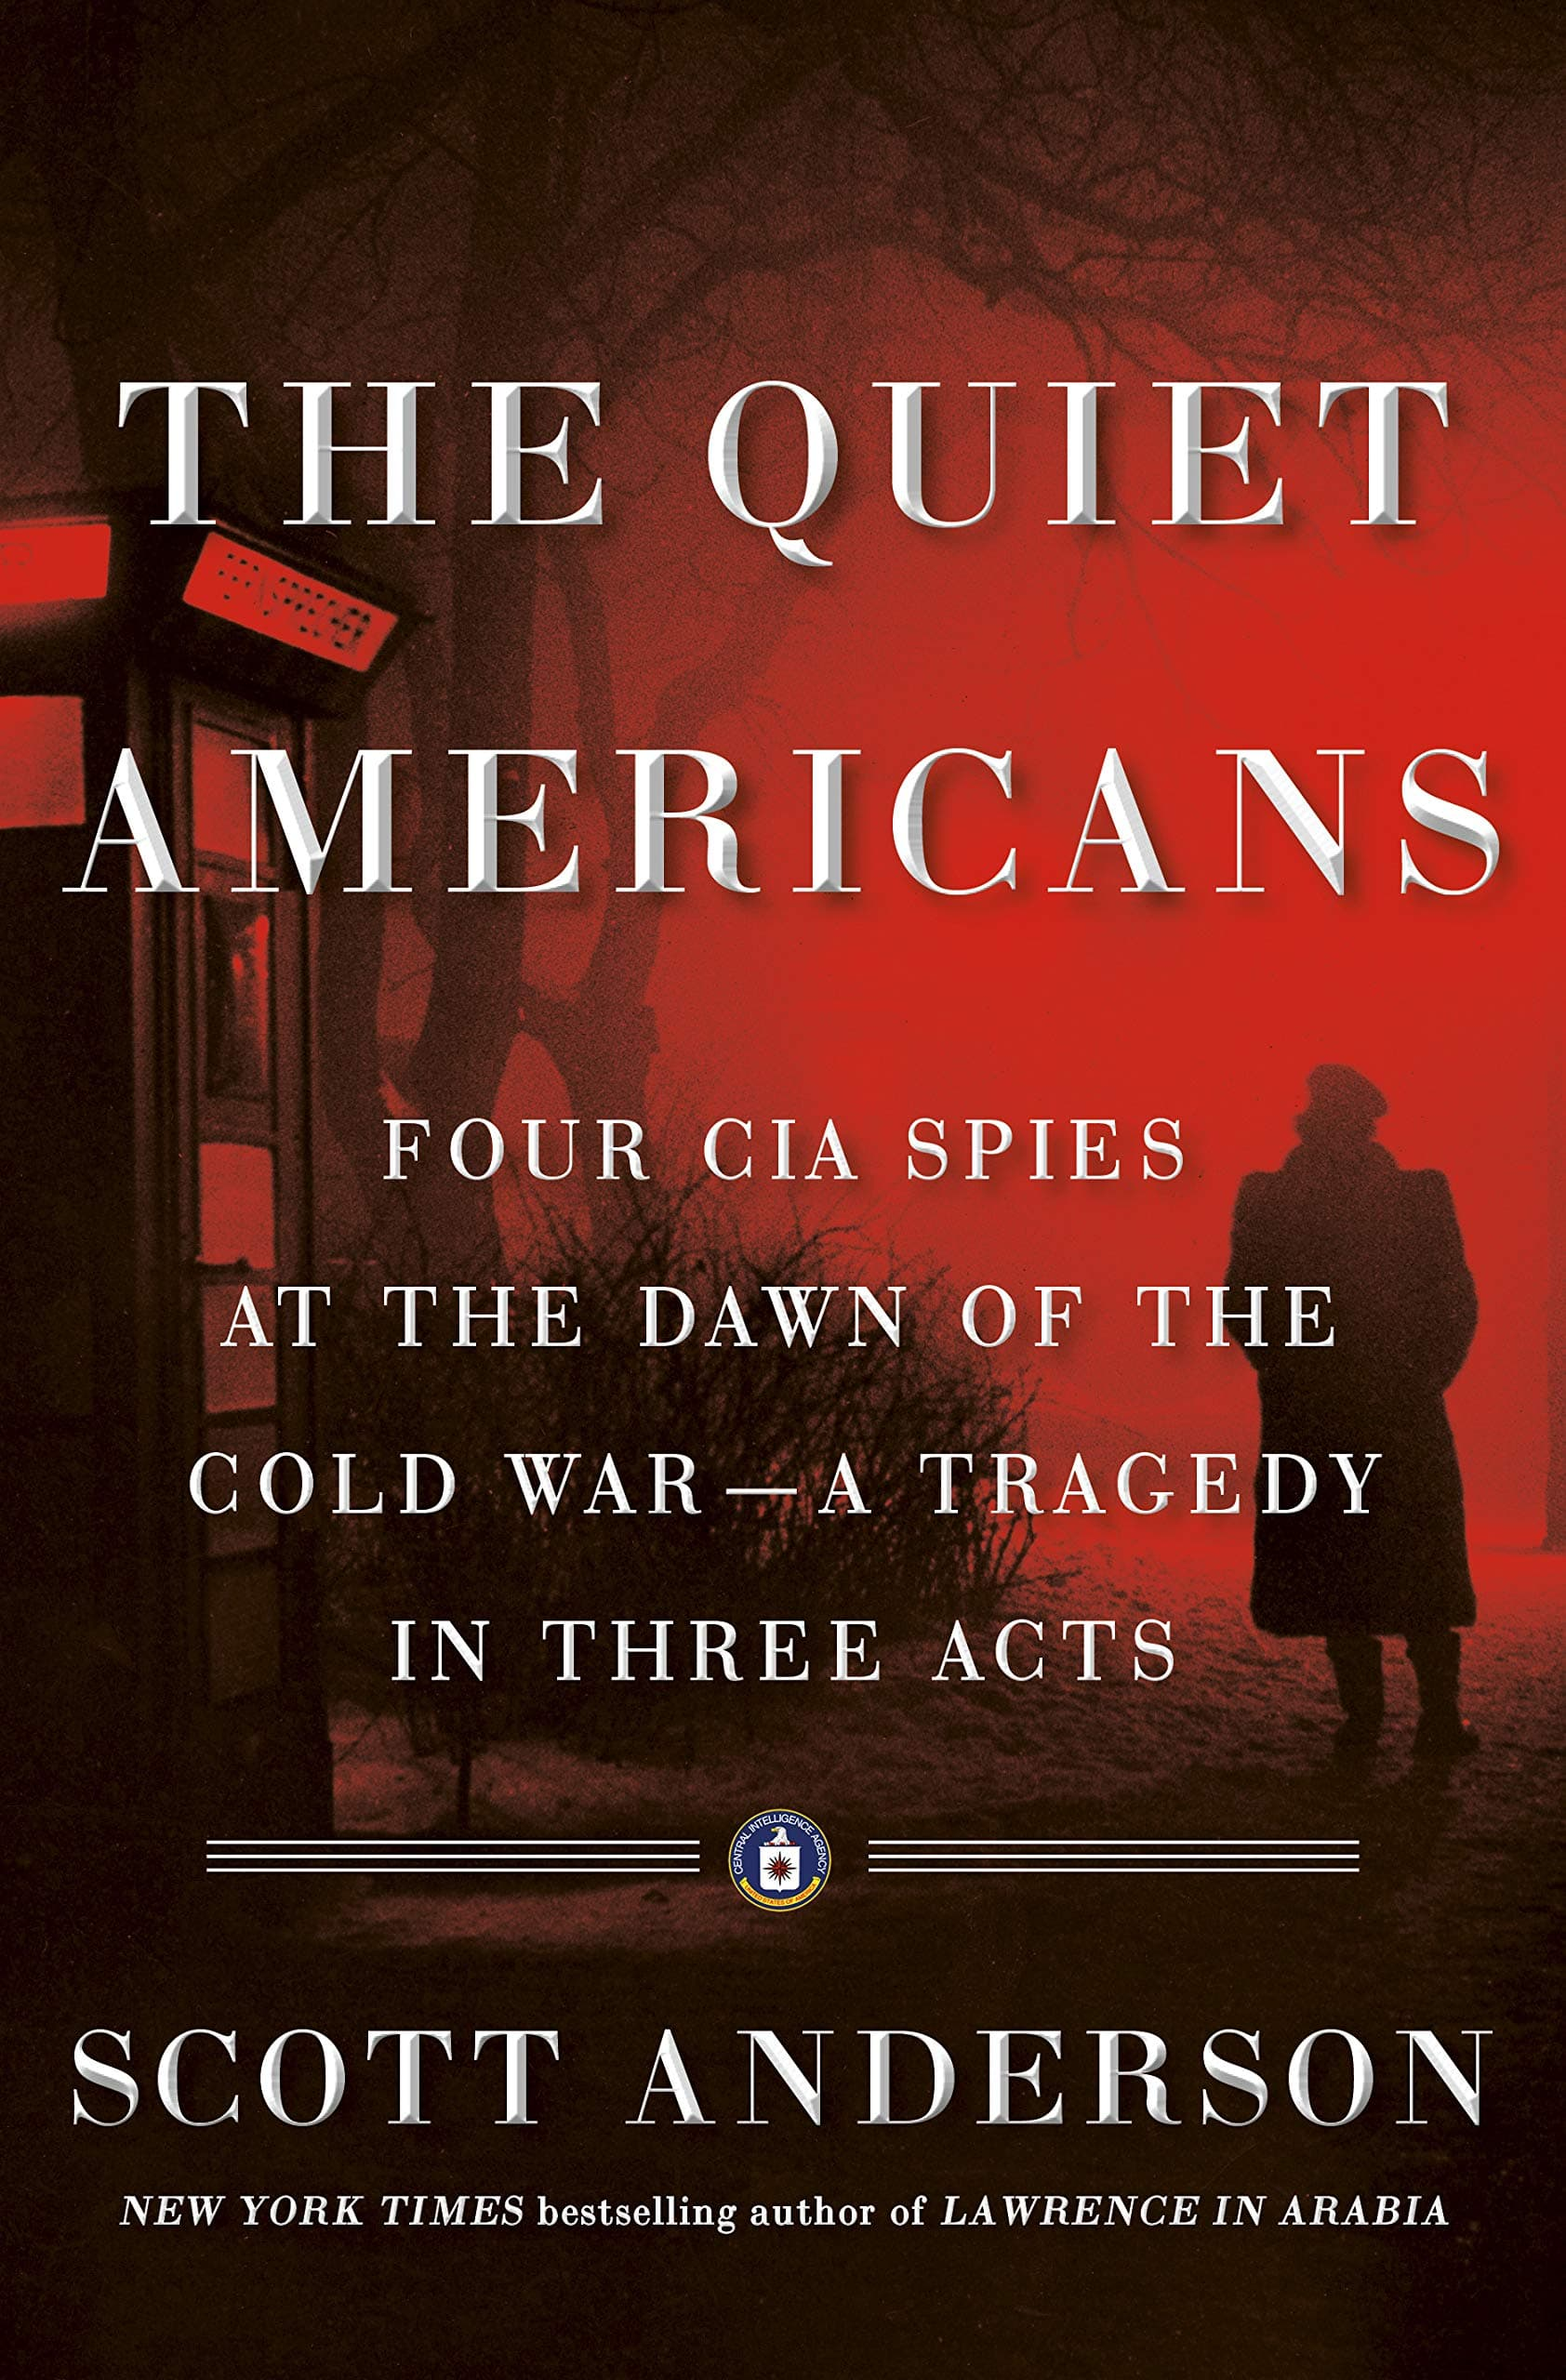 The cover of The Quiet Americans